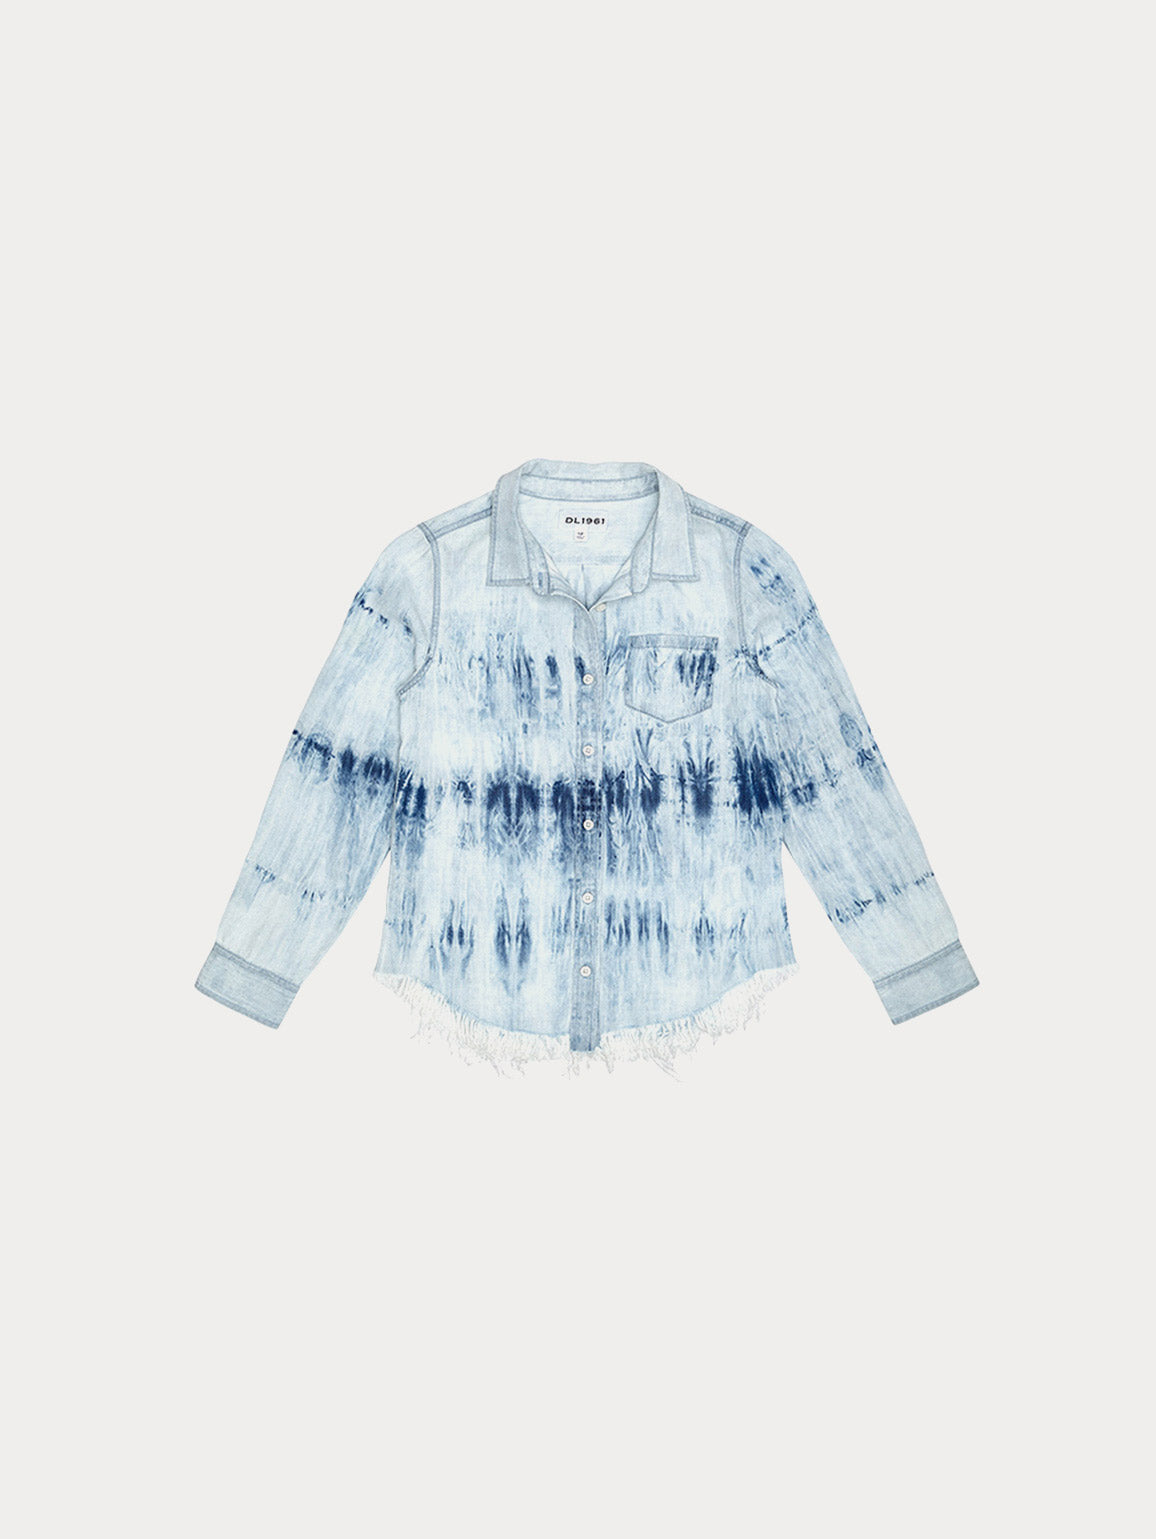 Olivia Toddler Shirt | Tie Dye